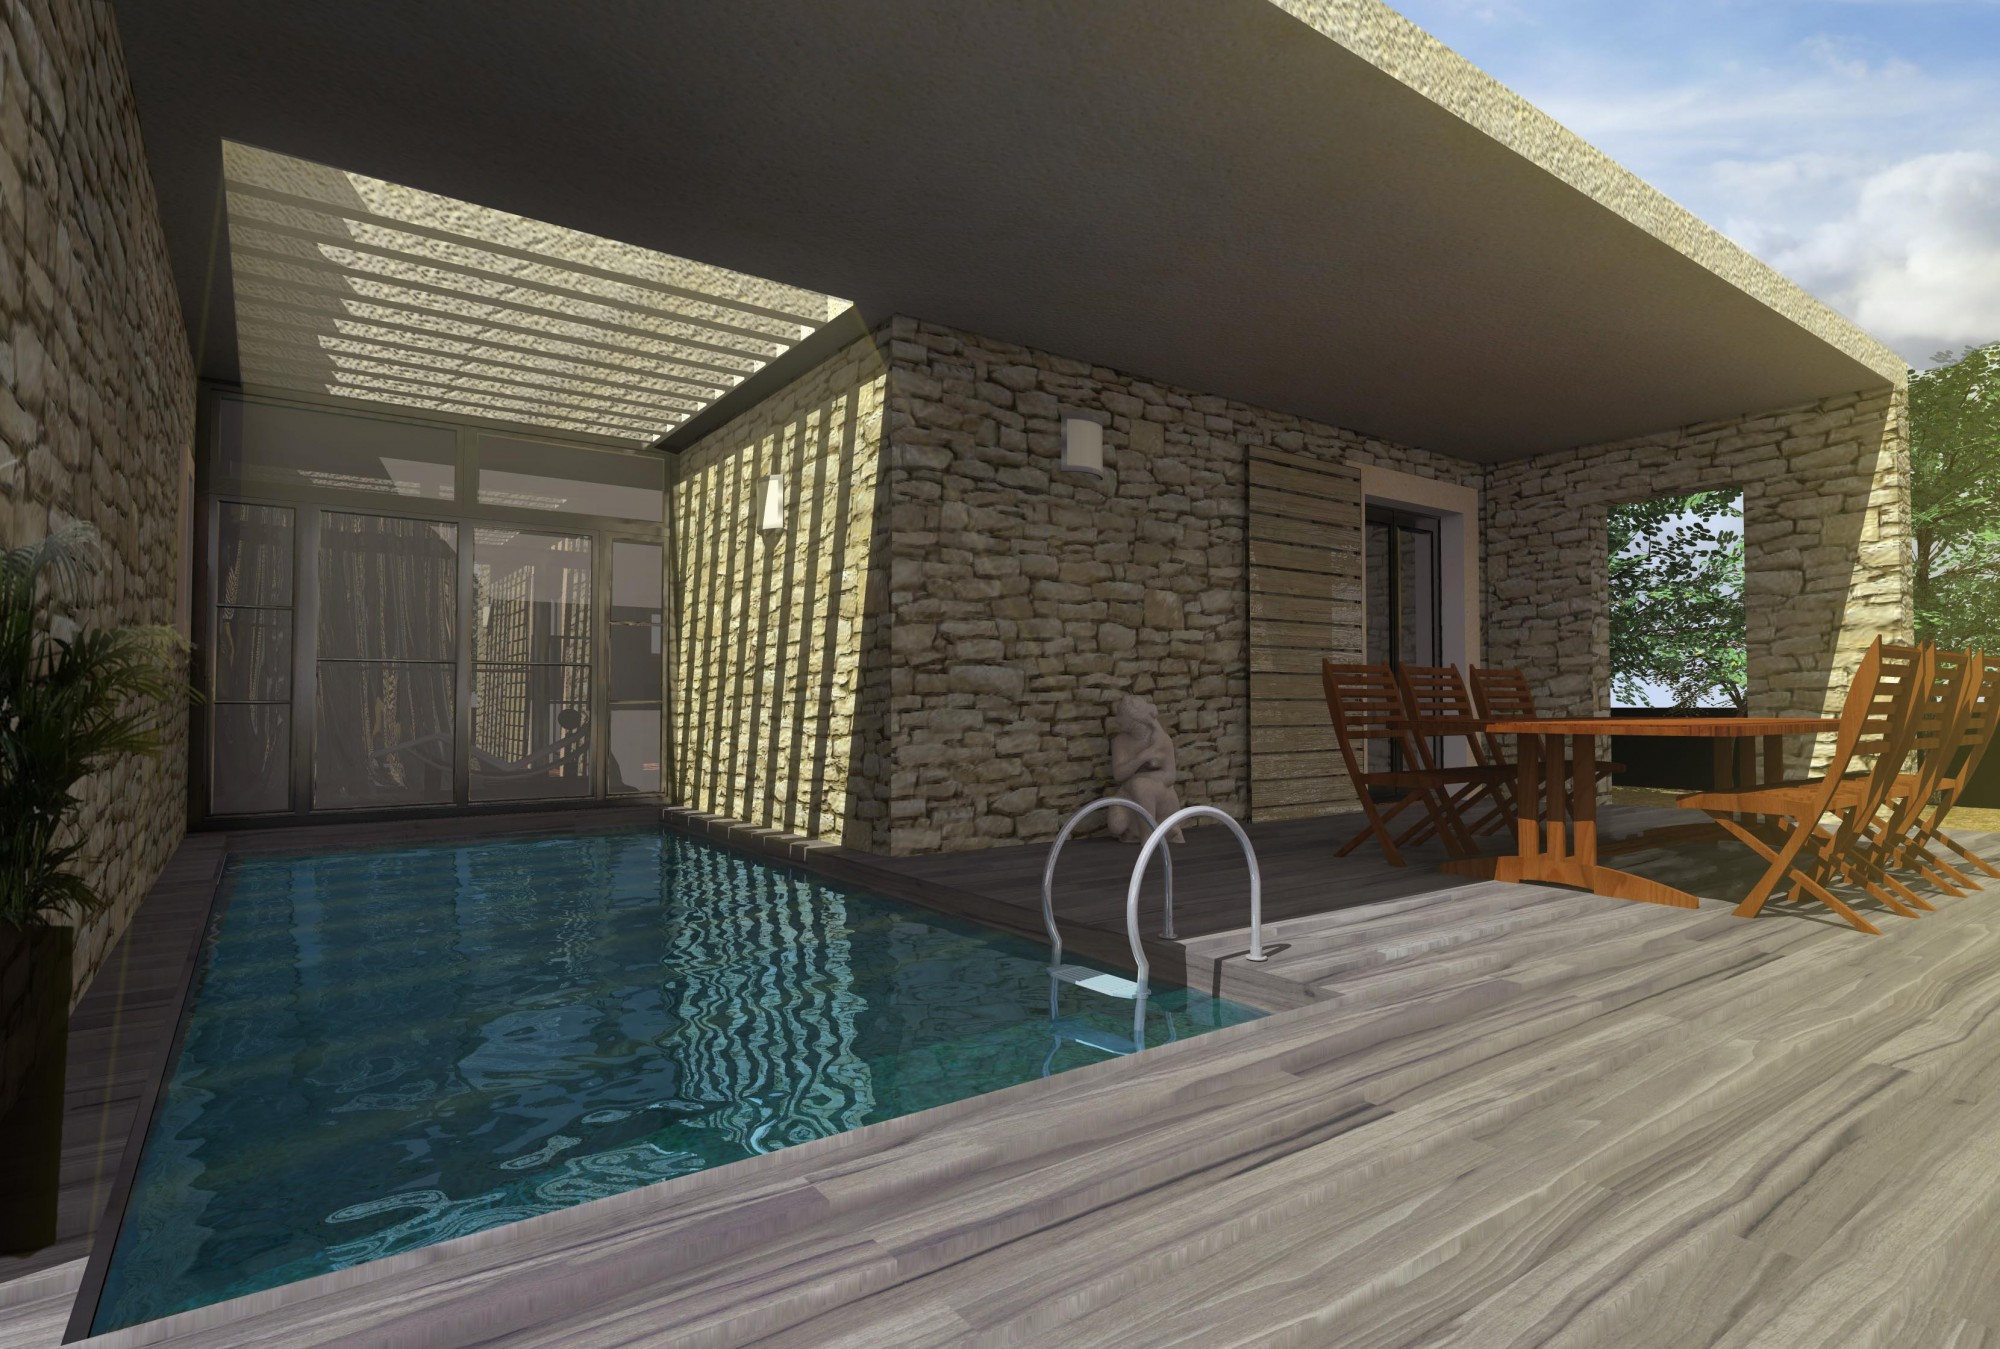 Cout d une piscine couverte construction d 39 une for Cout construction villa